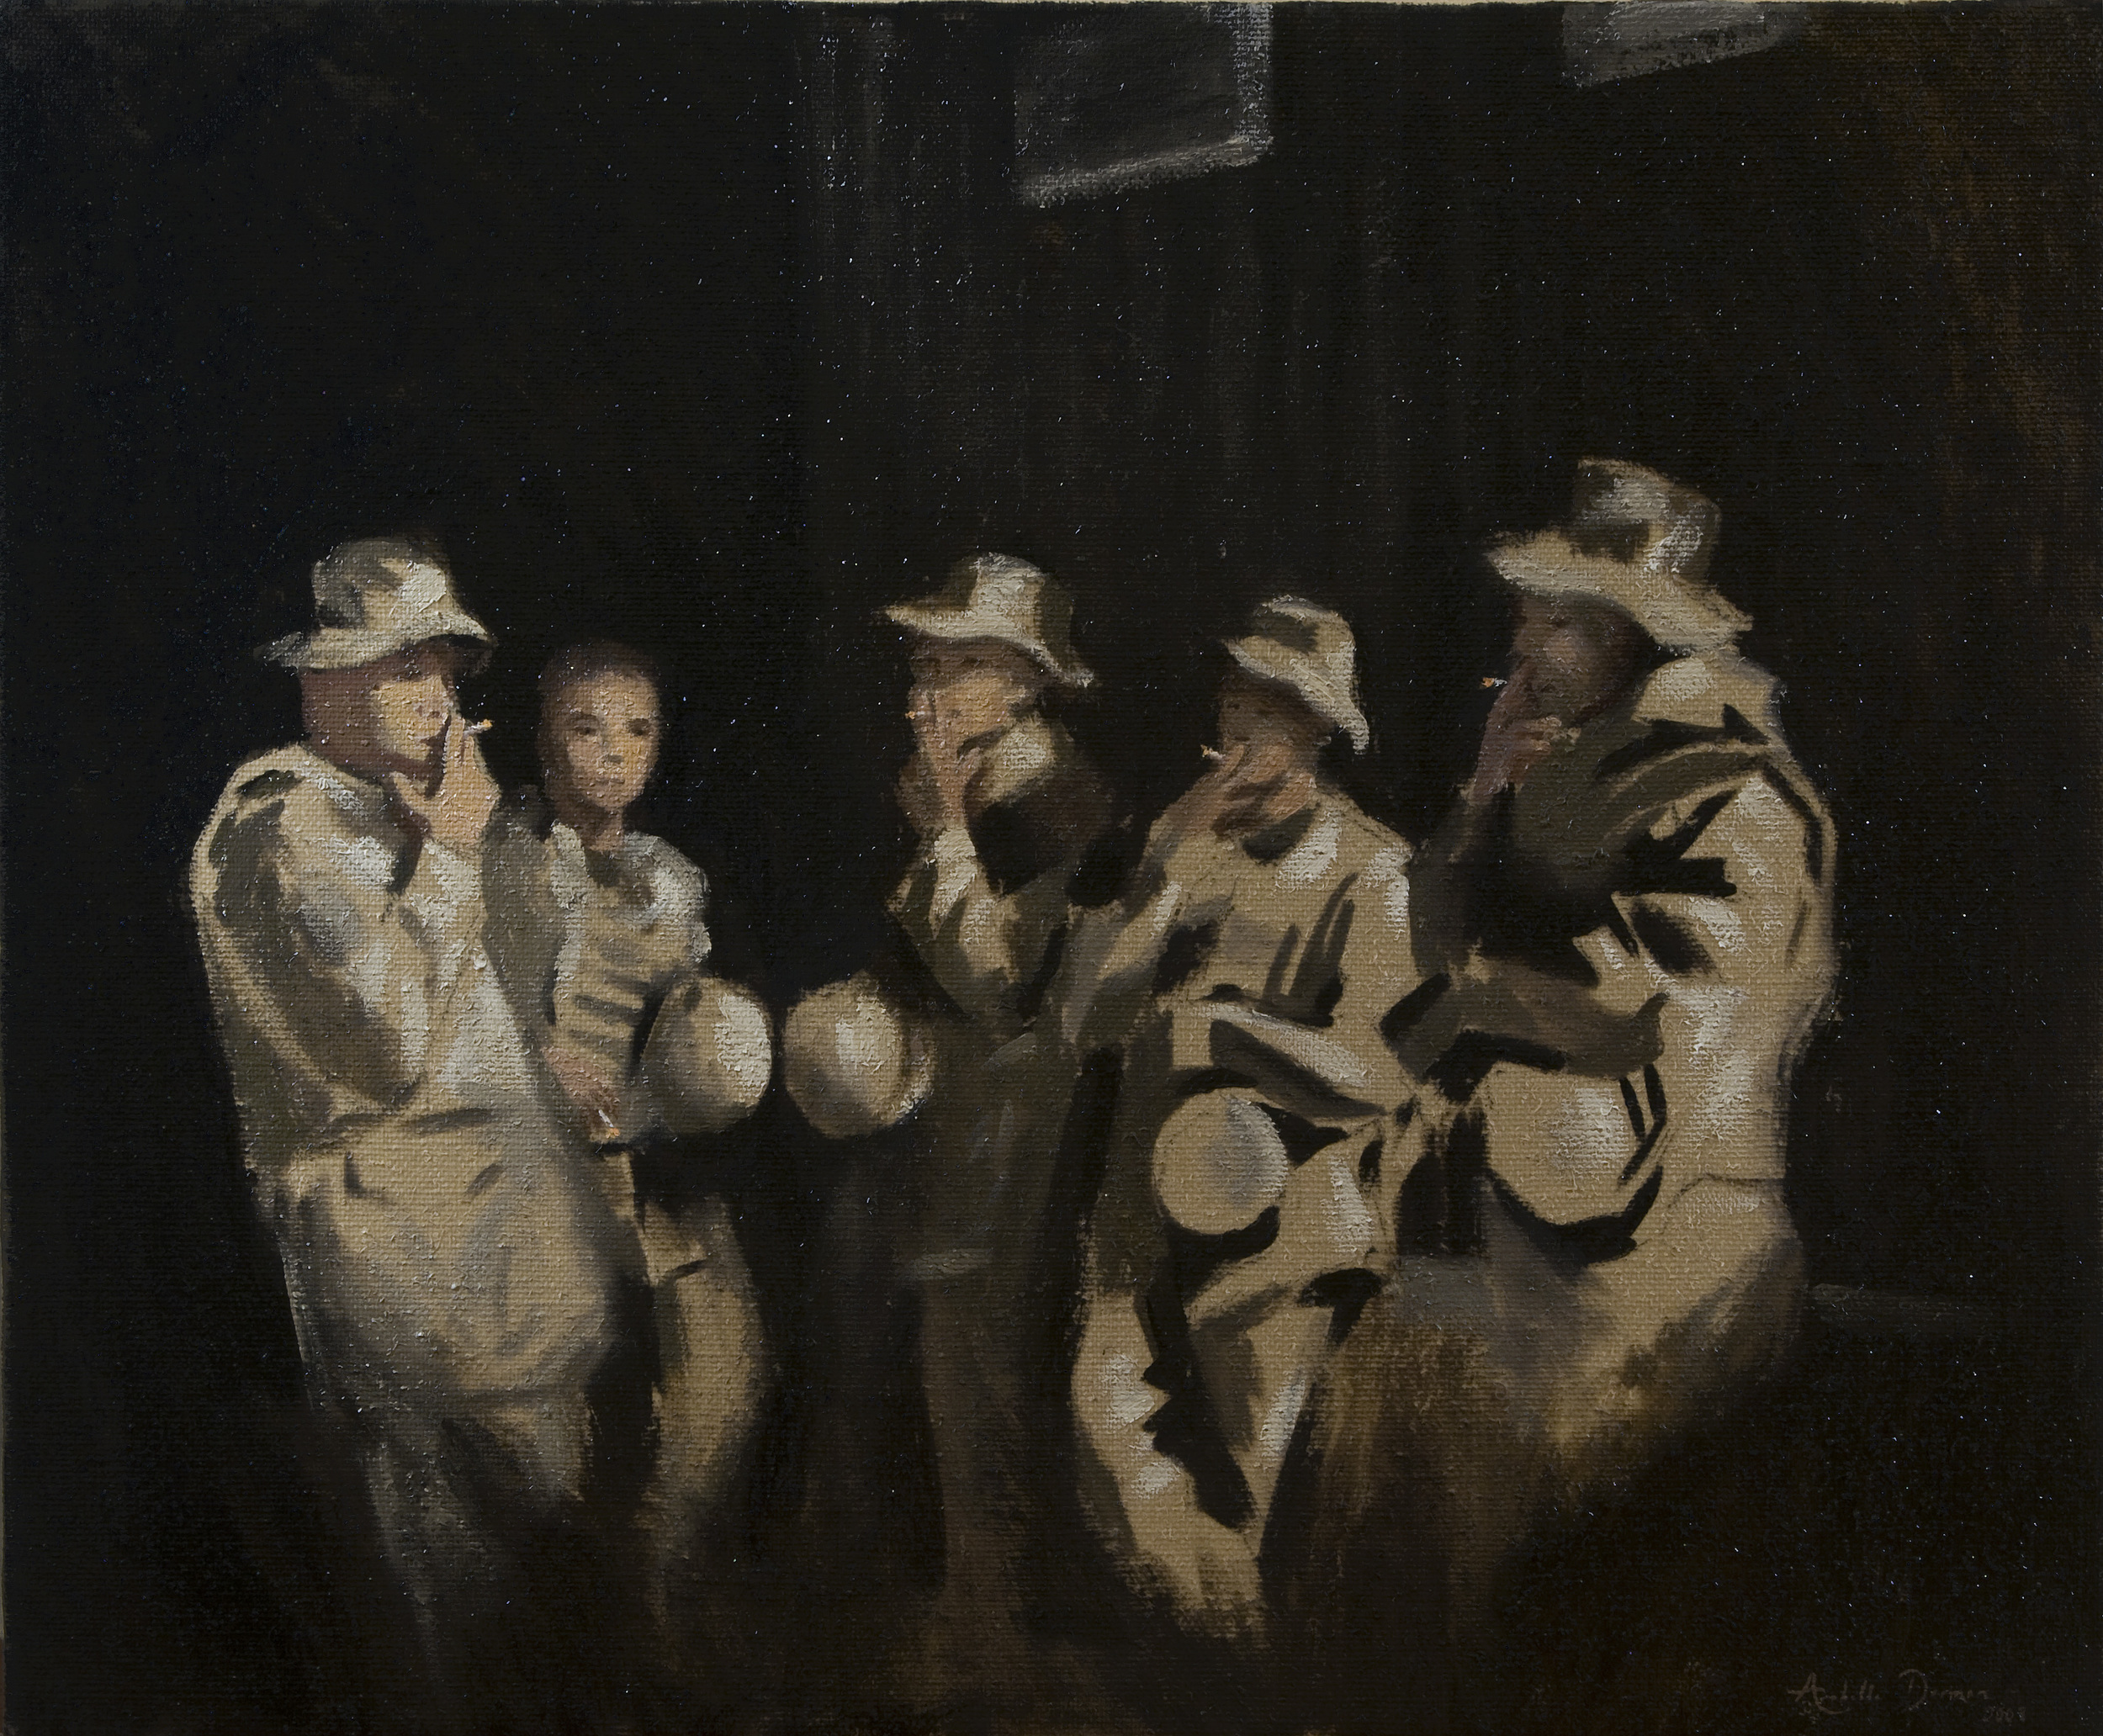 A Moment's Respite for The Queen's Own Gurkhas,Shaibah Oil on canvas, 24 x 30, Collection of The Queen's Own Gurkhas, Iraq